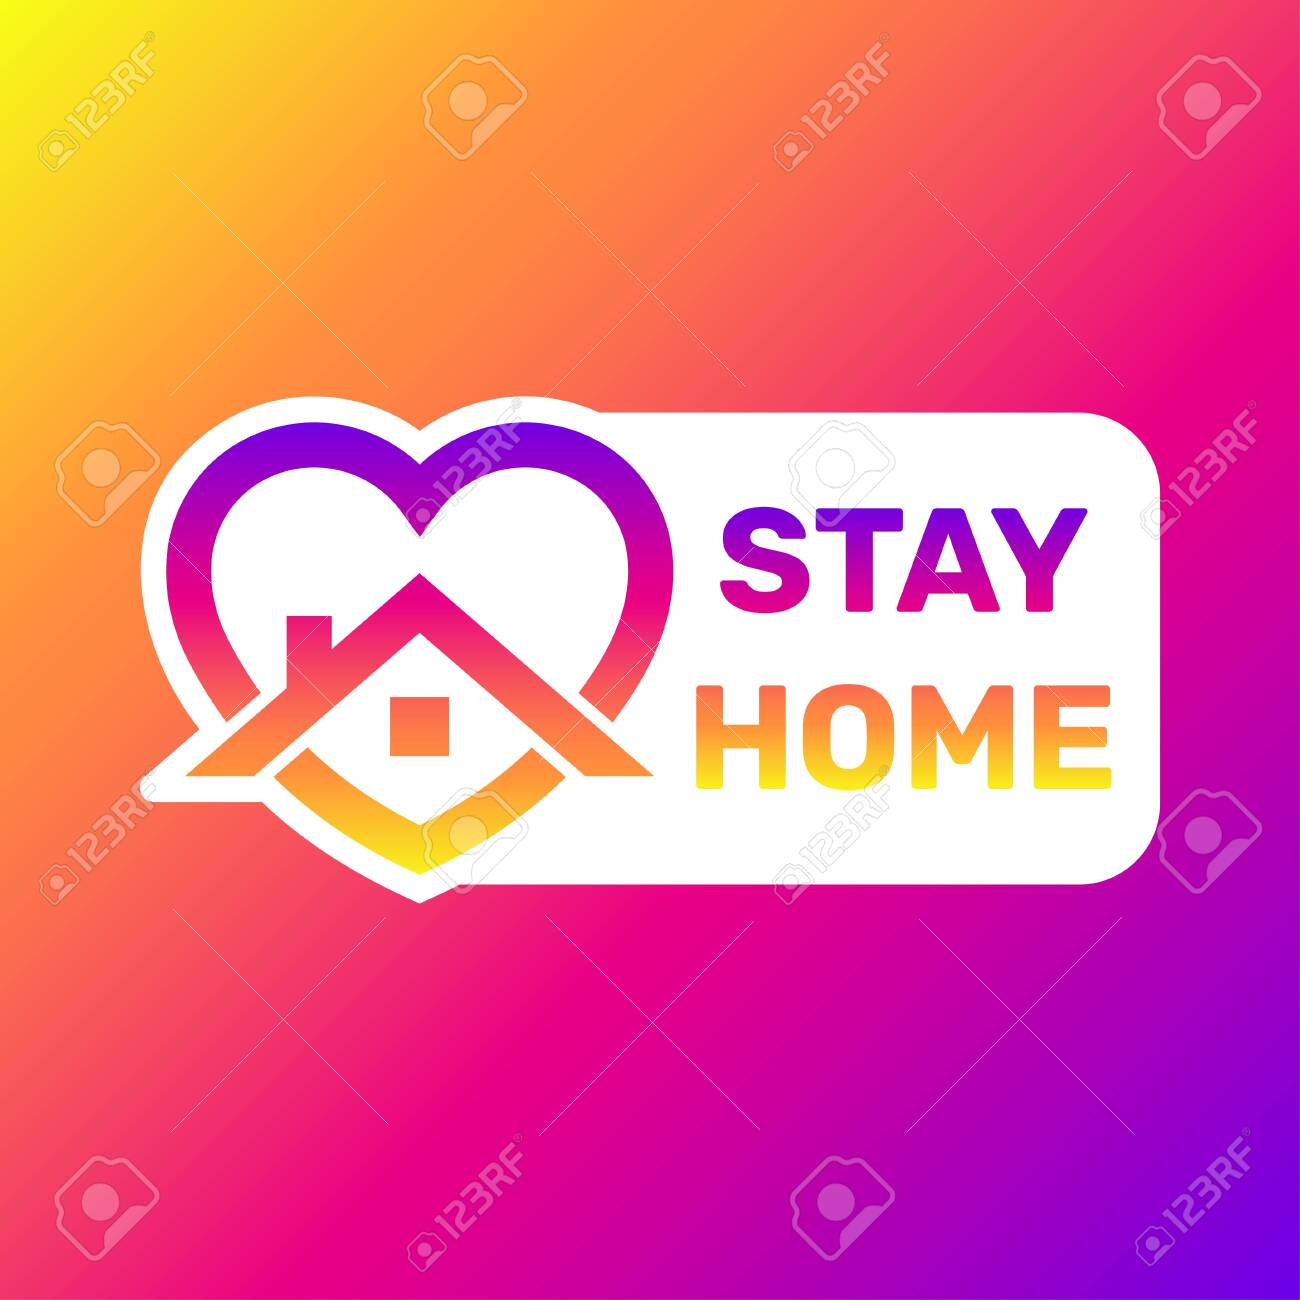 Stay home sticker. House with heart shape, love stay at home care symbol, vector illustration. - 147130318